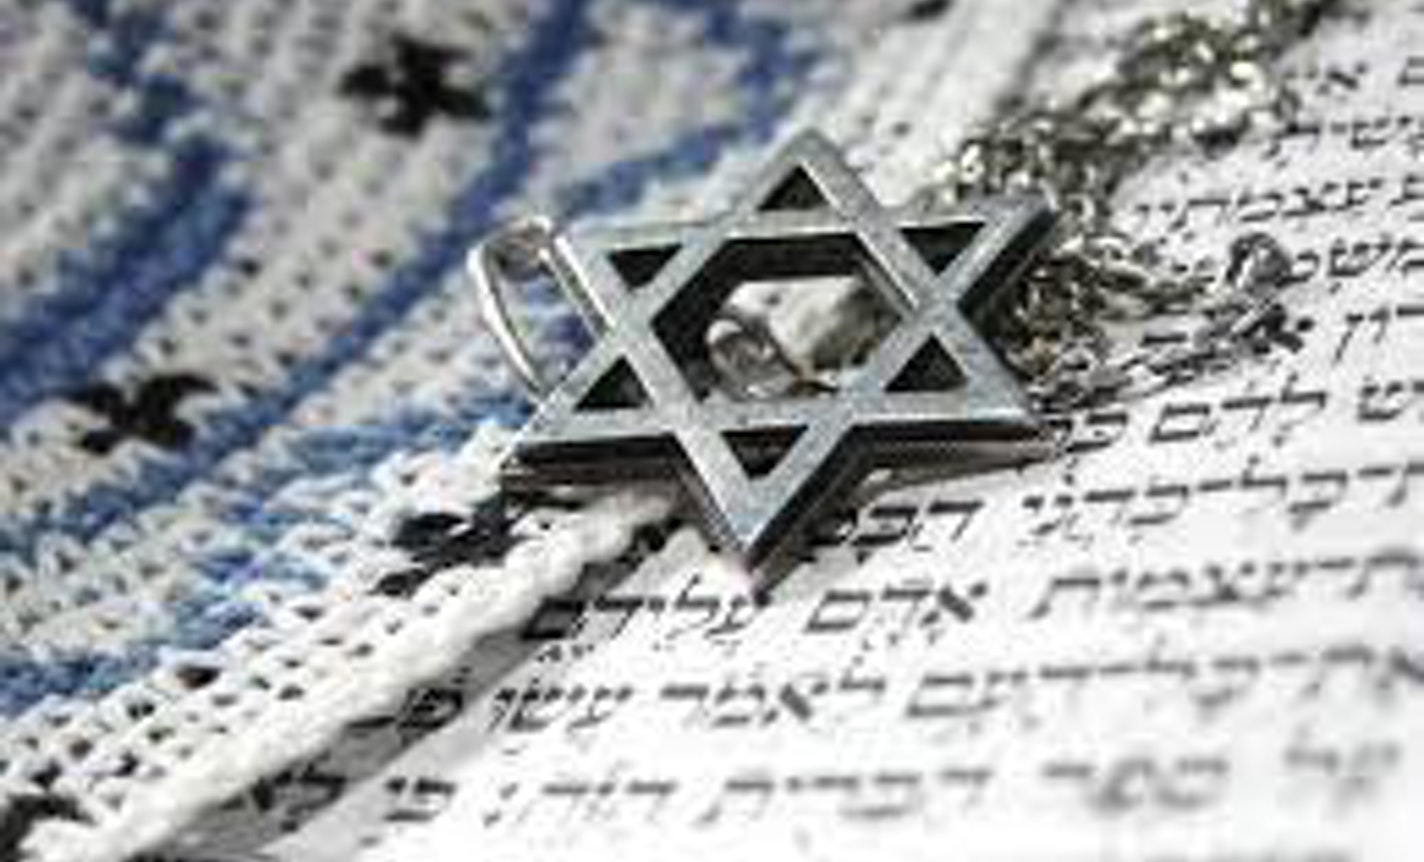 Contemporary Spirituality & Jewish Traditions about Death